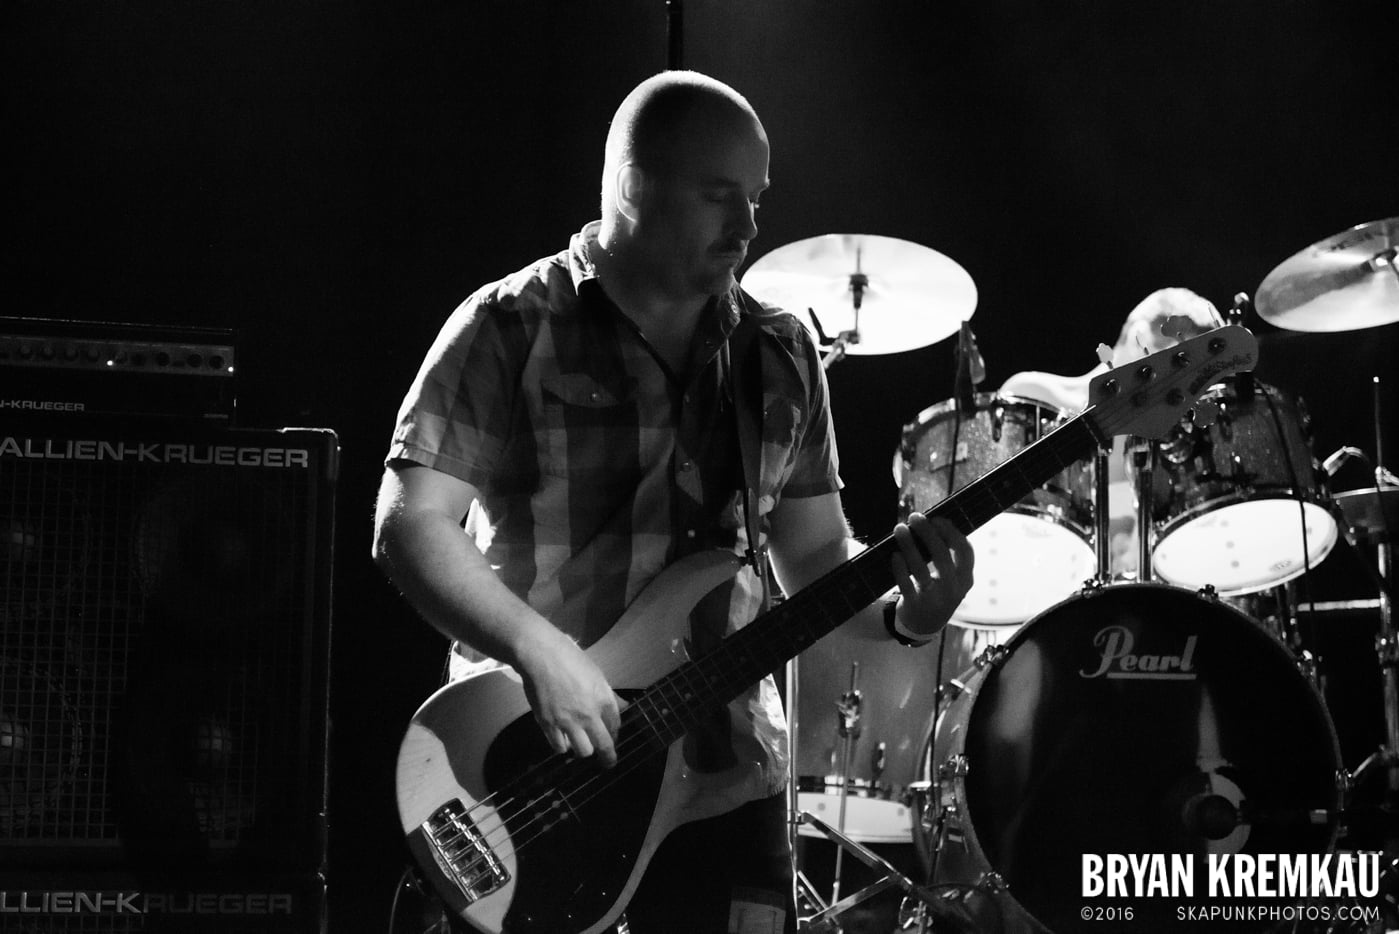 Thumper @ Apple Stomp: Day 2, Irving Plaza, NYC - June 1st 2013 - Bryan Kremkau (13)